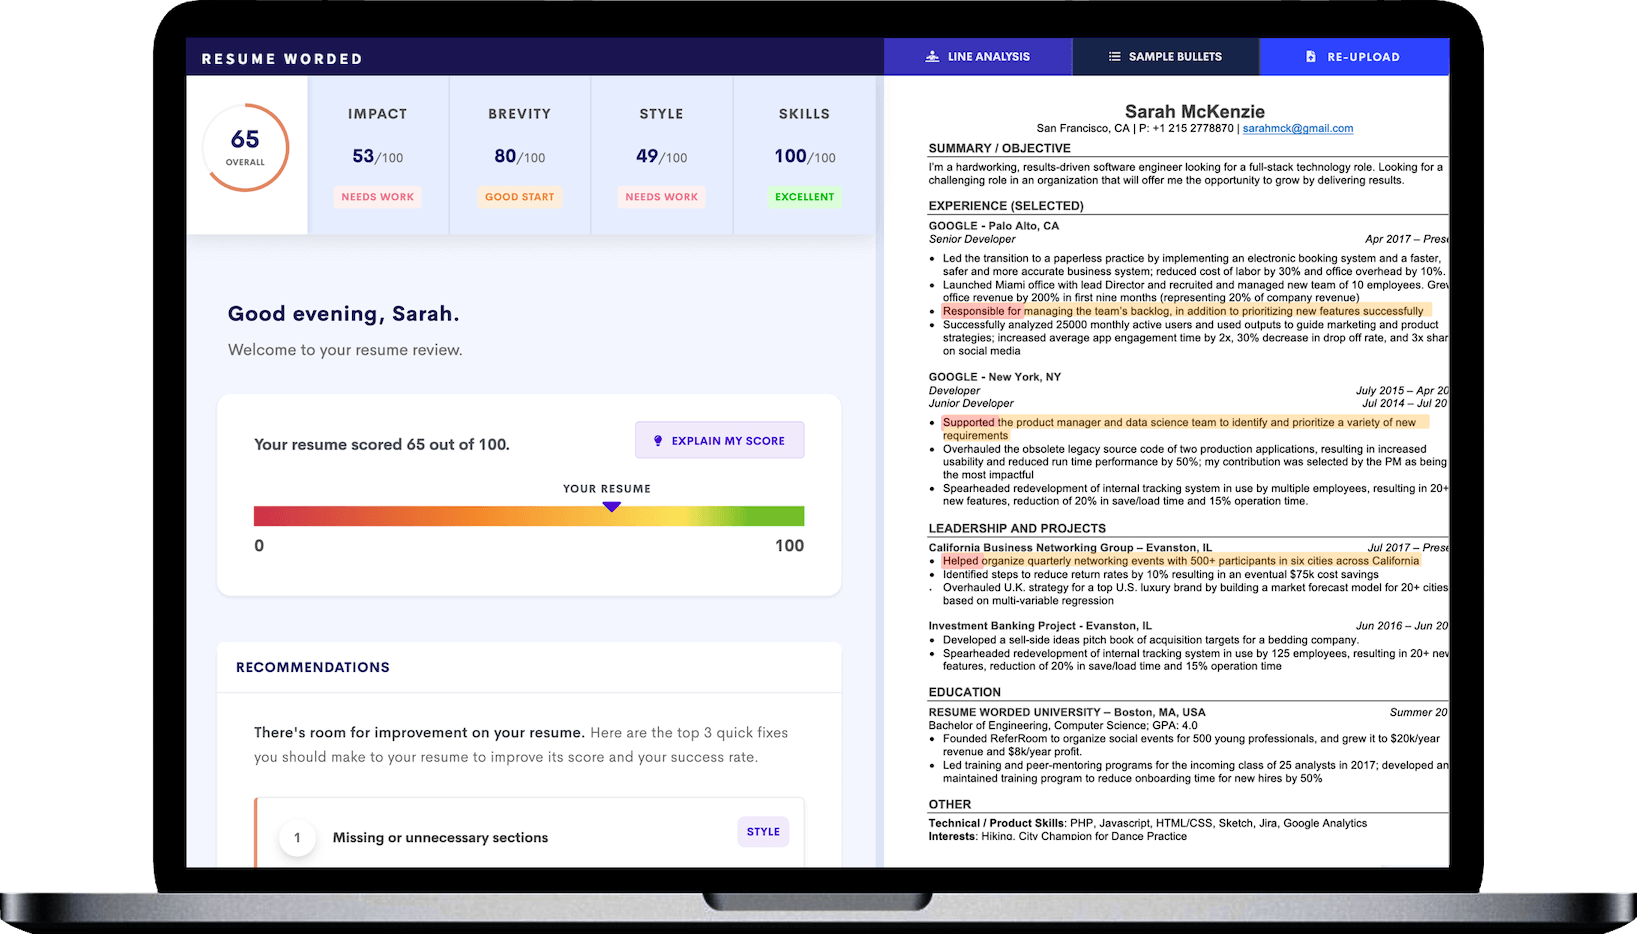 Recruiters and hiring managers spend an average of 6 seconds reviewing a candidate's resume before they make an initial assessment. Resume Scanner Get A Free Ats Resume Scan